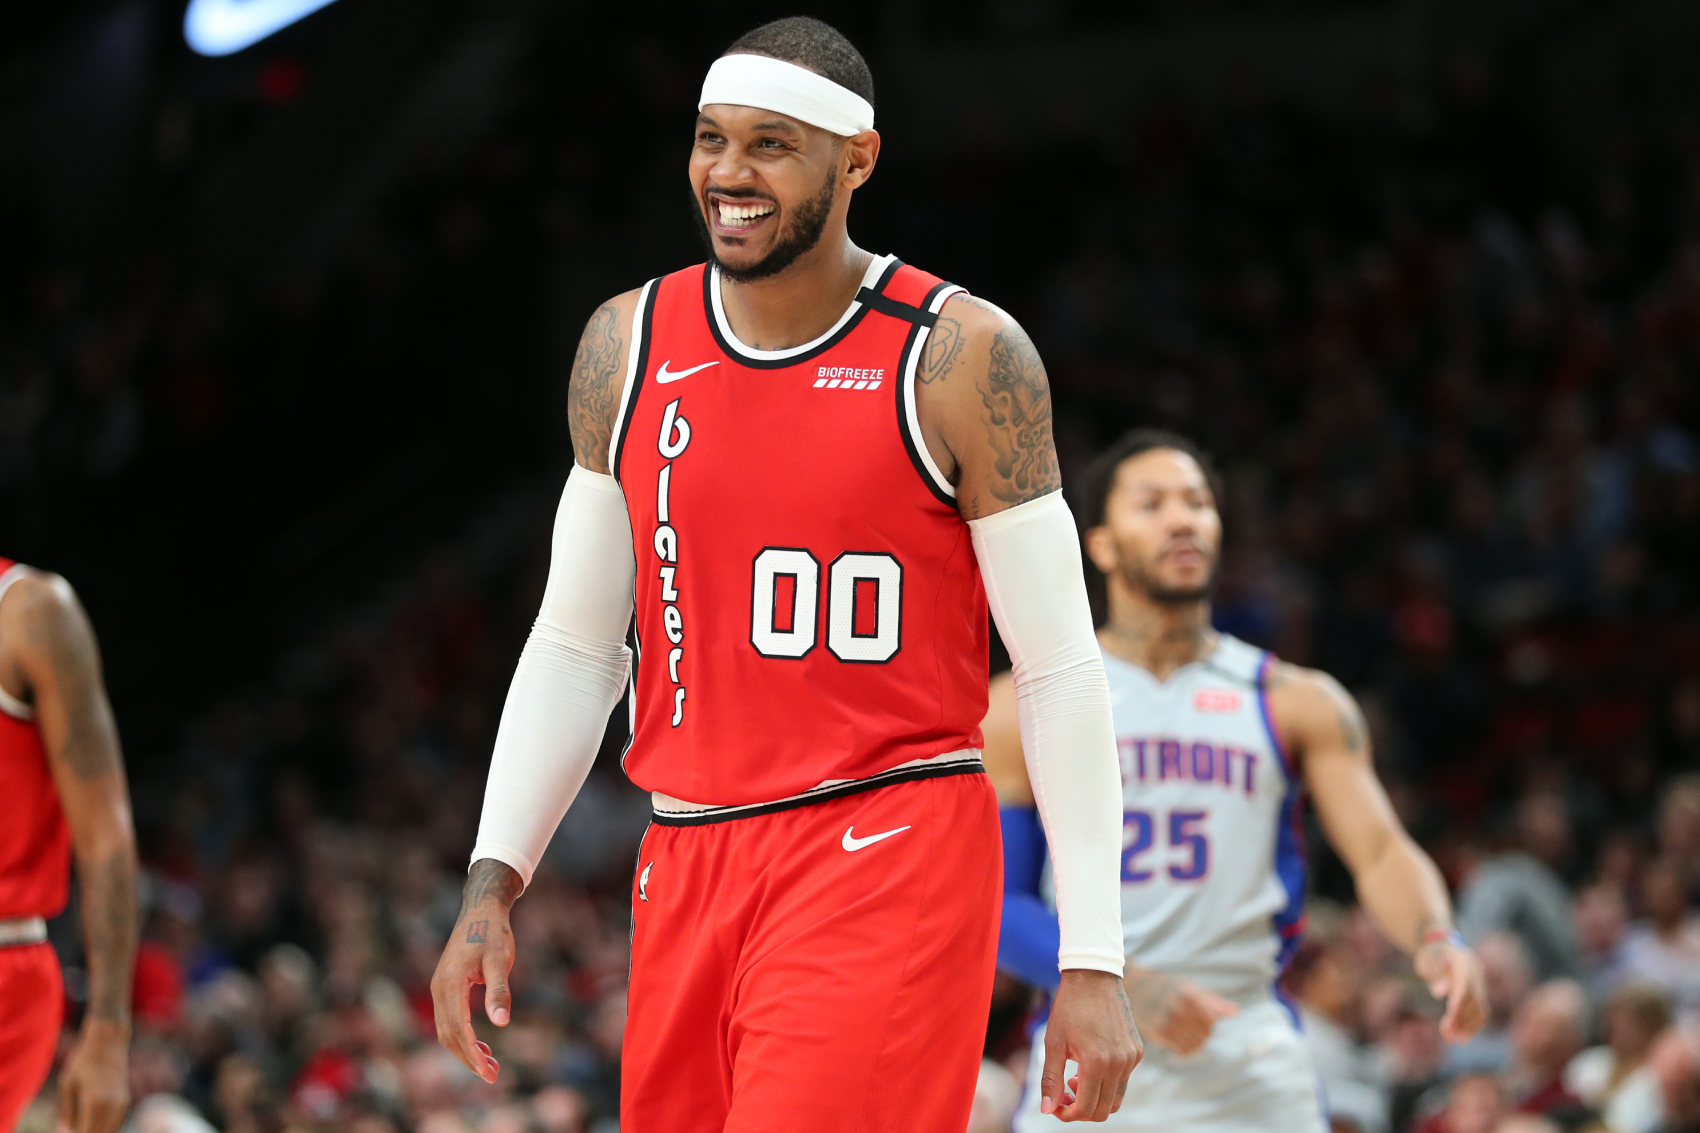 Carmelo Anthony proved that he is still an effective NBA player with the Portland Trail Blazers. So, where will Anthony go next?